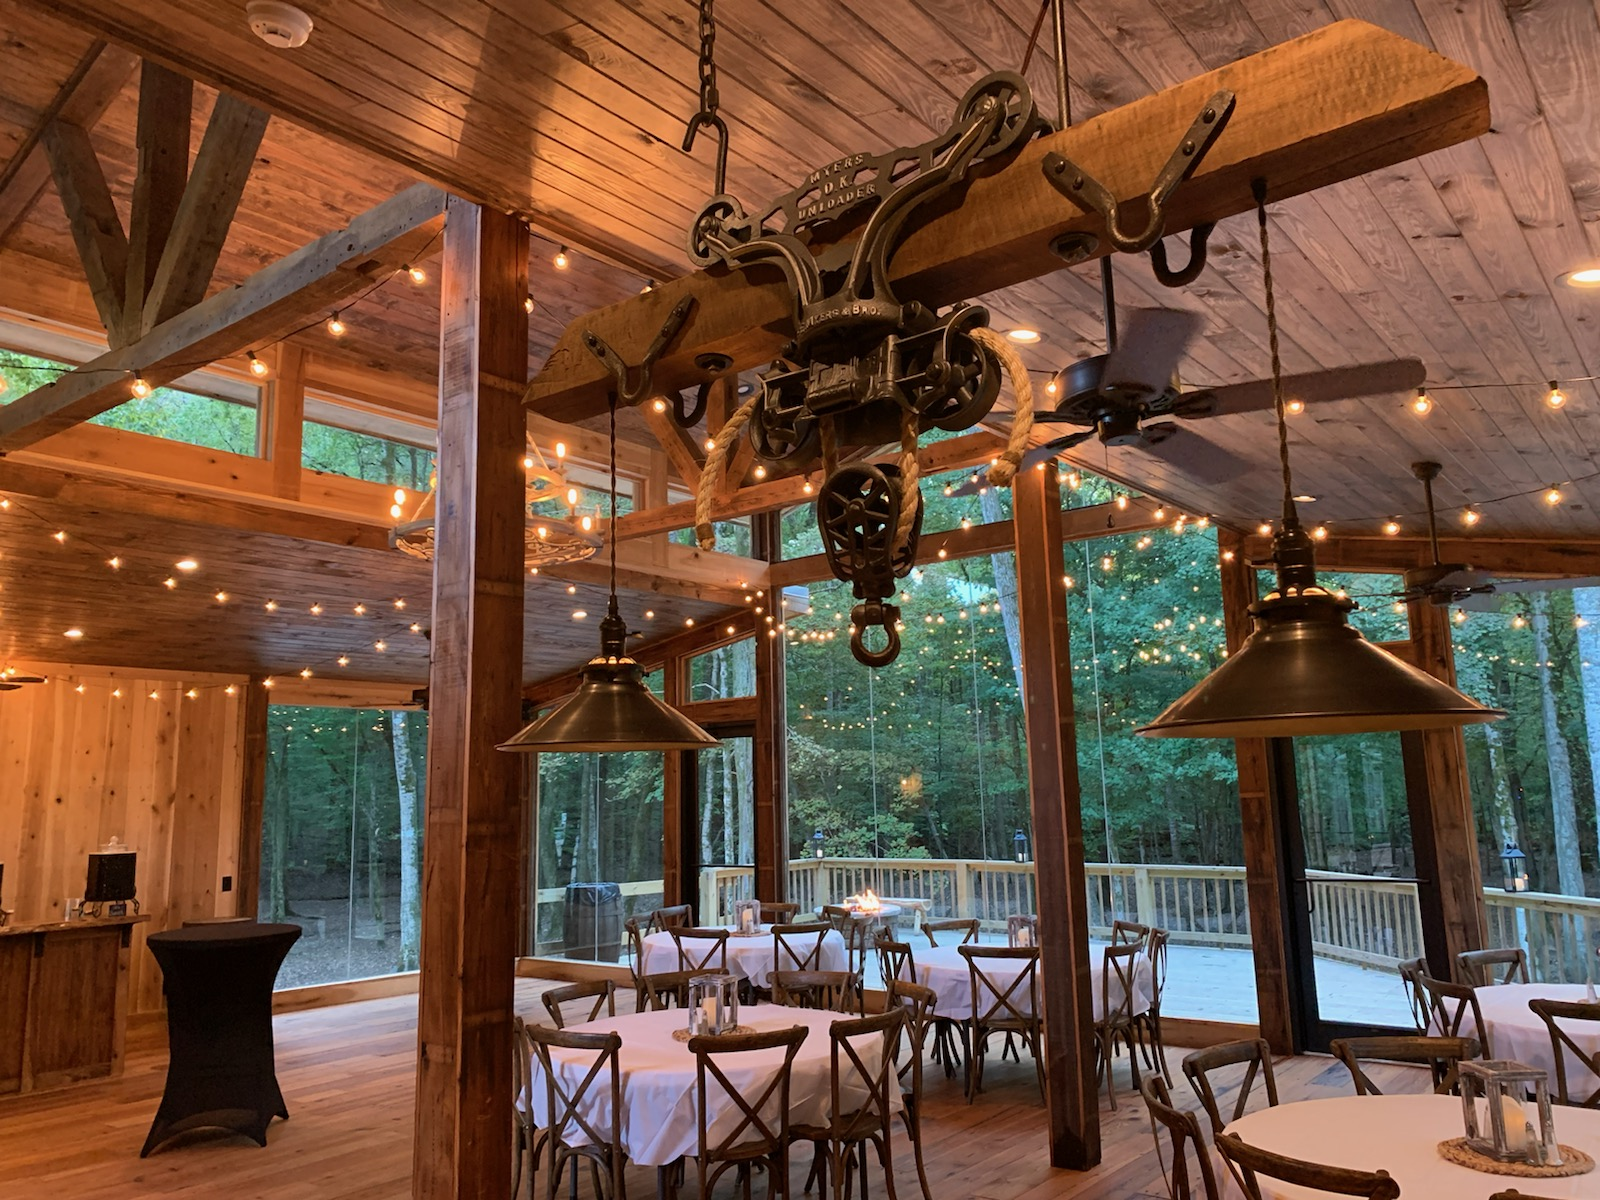 large room with floor to ceiling glass windows, wooden ceiling and columns. String lights hanging across the ceiling. Multiple circle tables with chairs and tablecloth on top